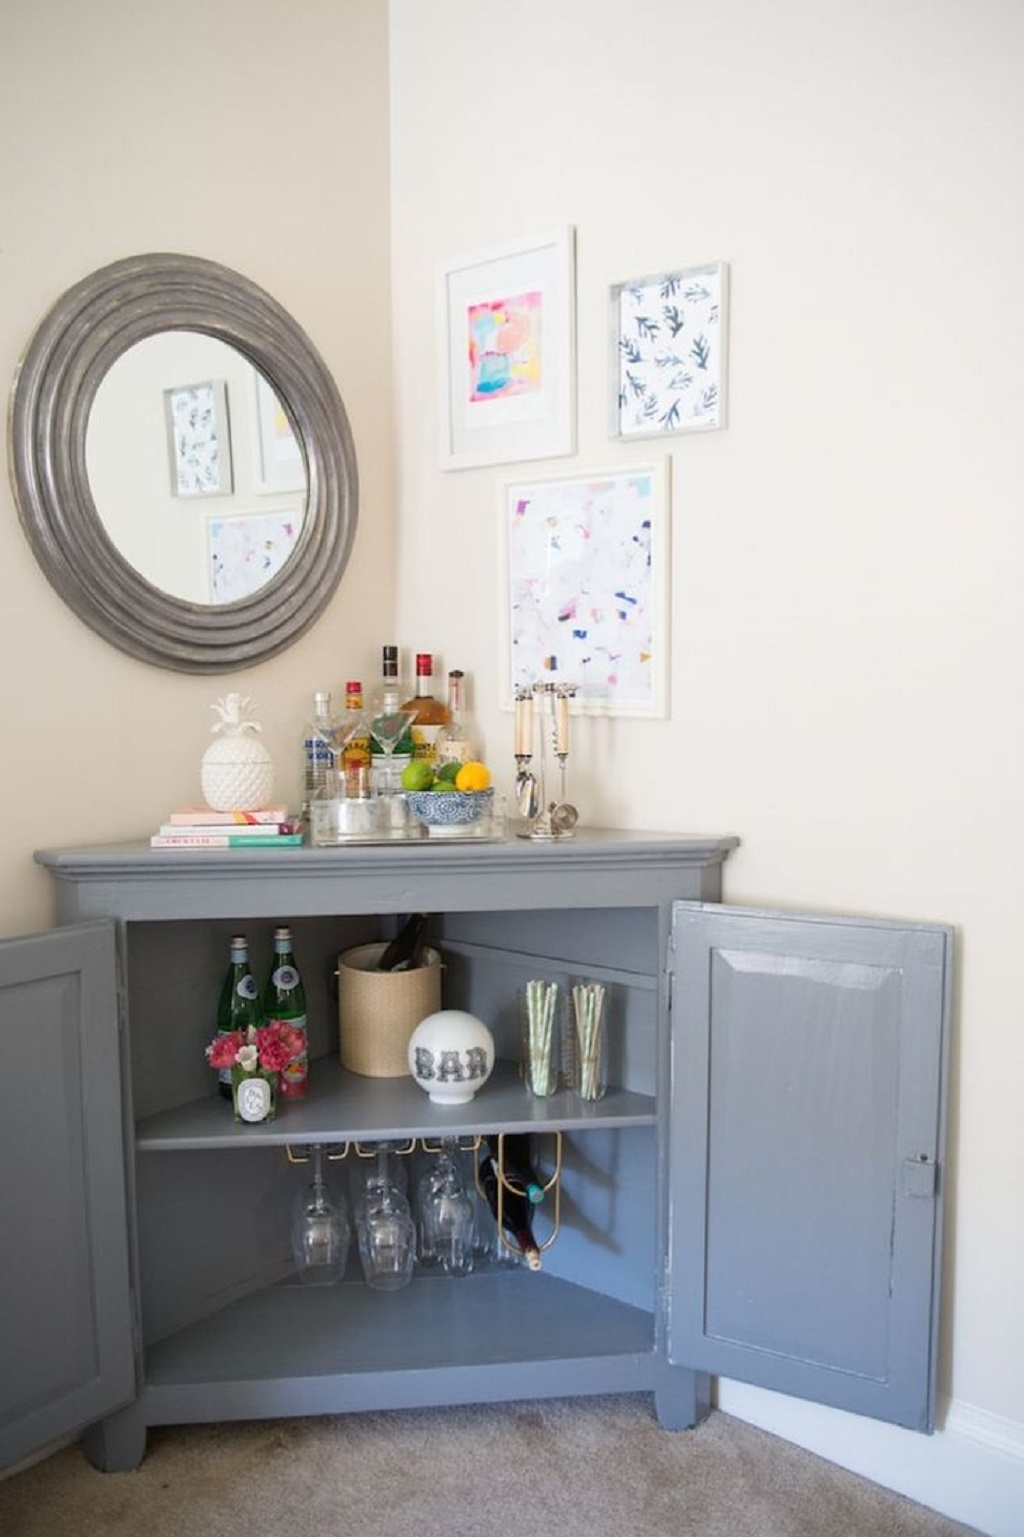 Beer Bottle Storage Cabinetbrilliant corner cabinet for living room ideas that functioned as